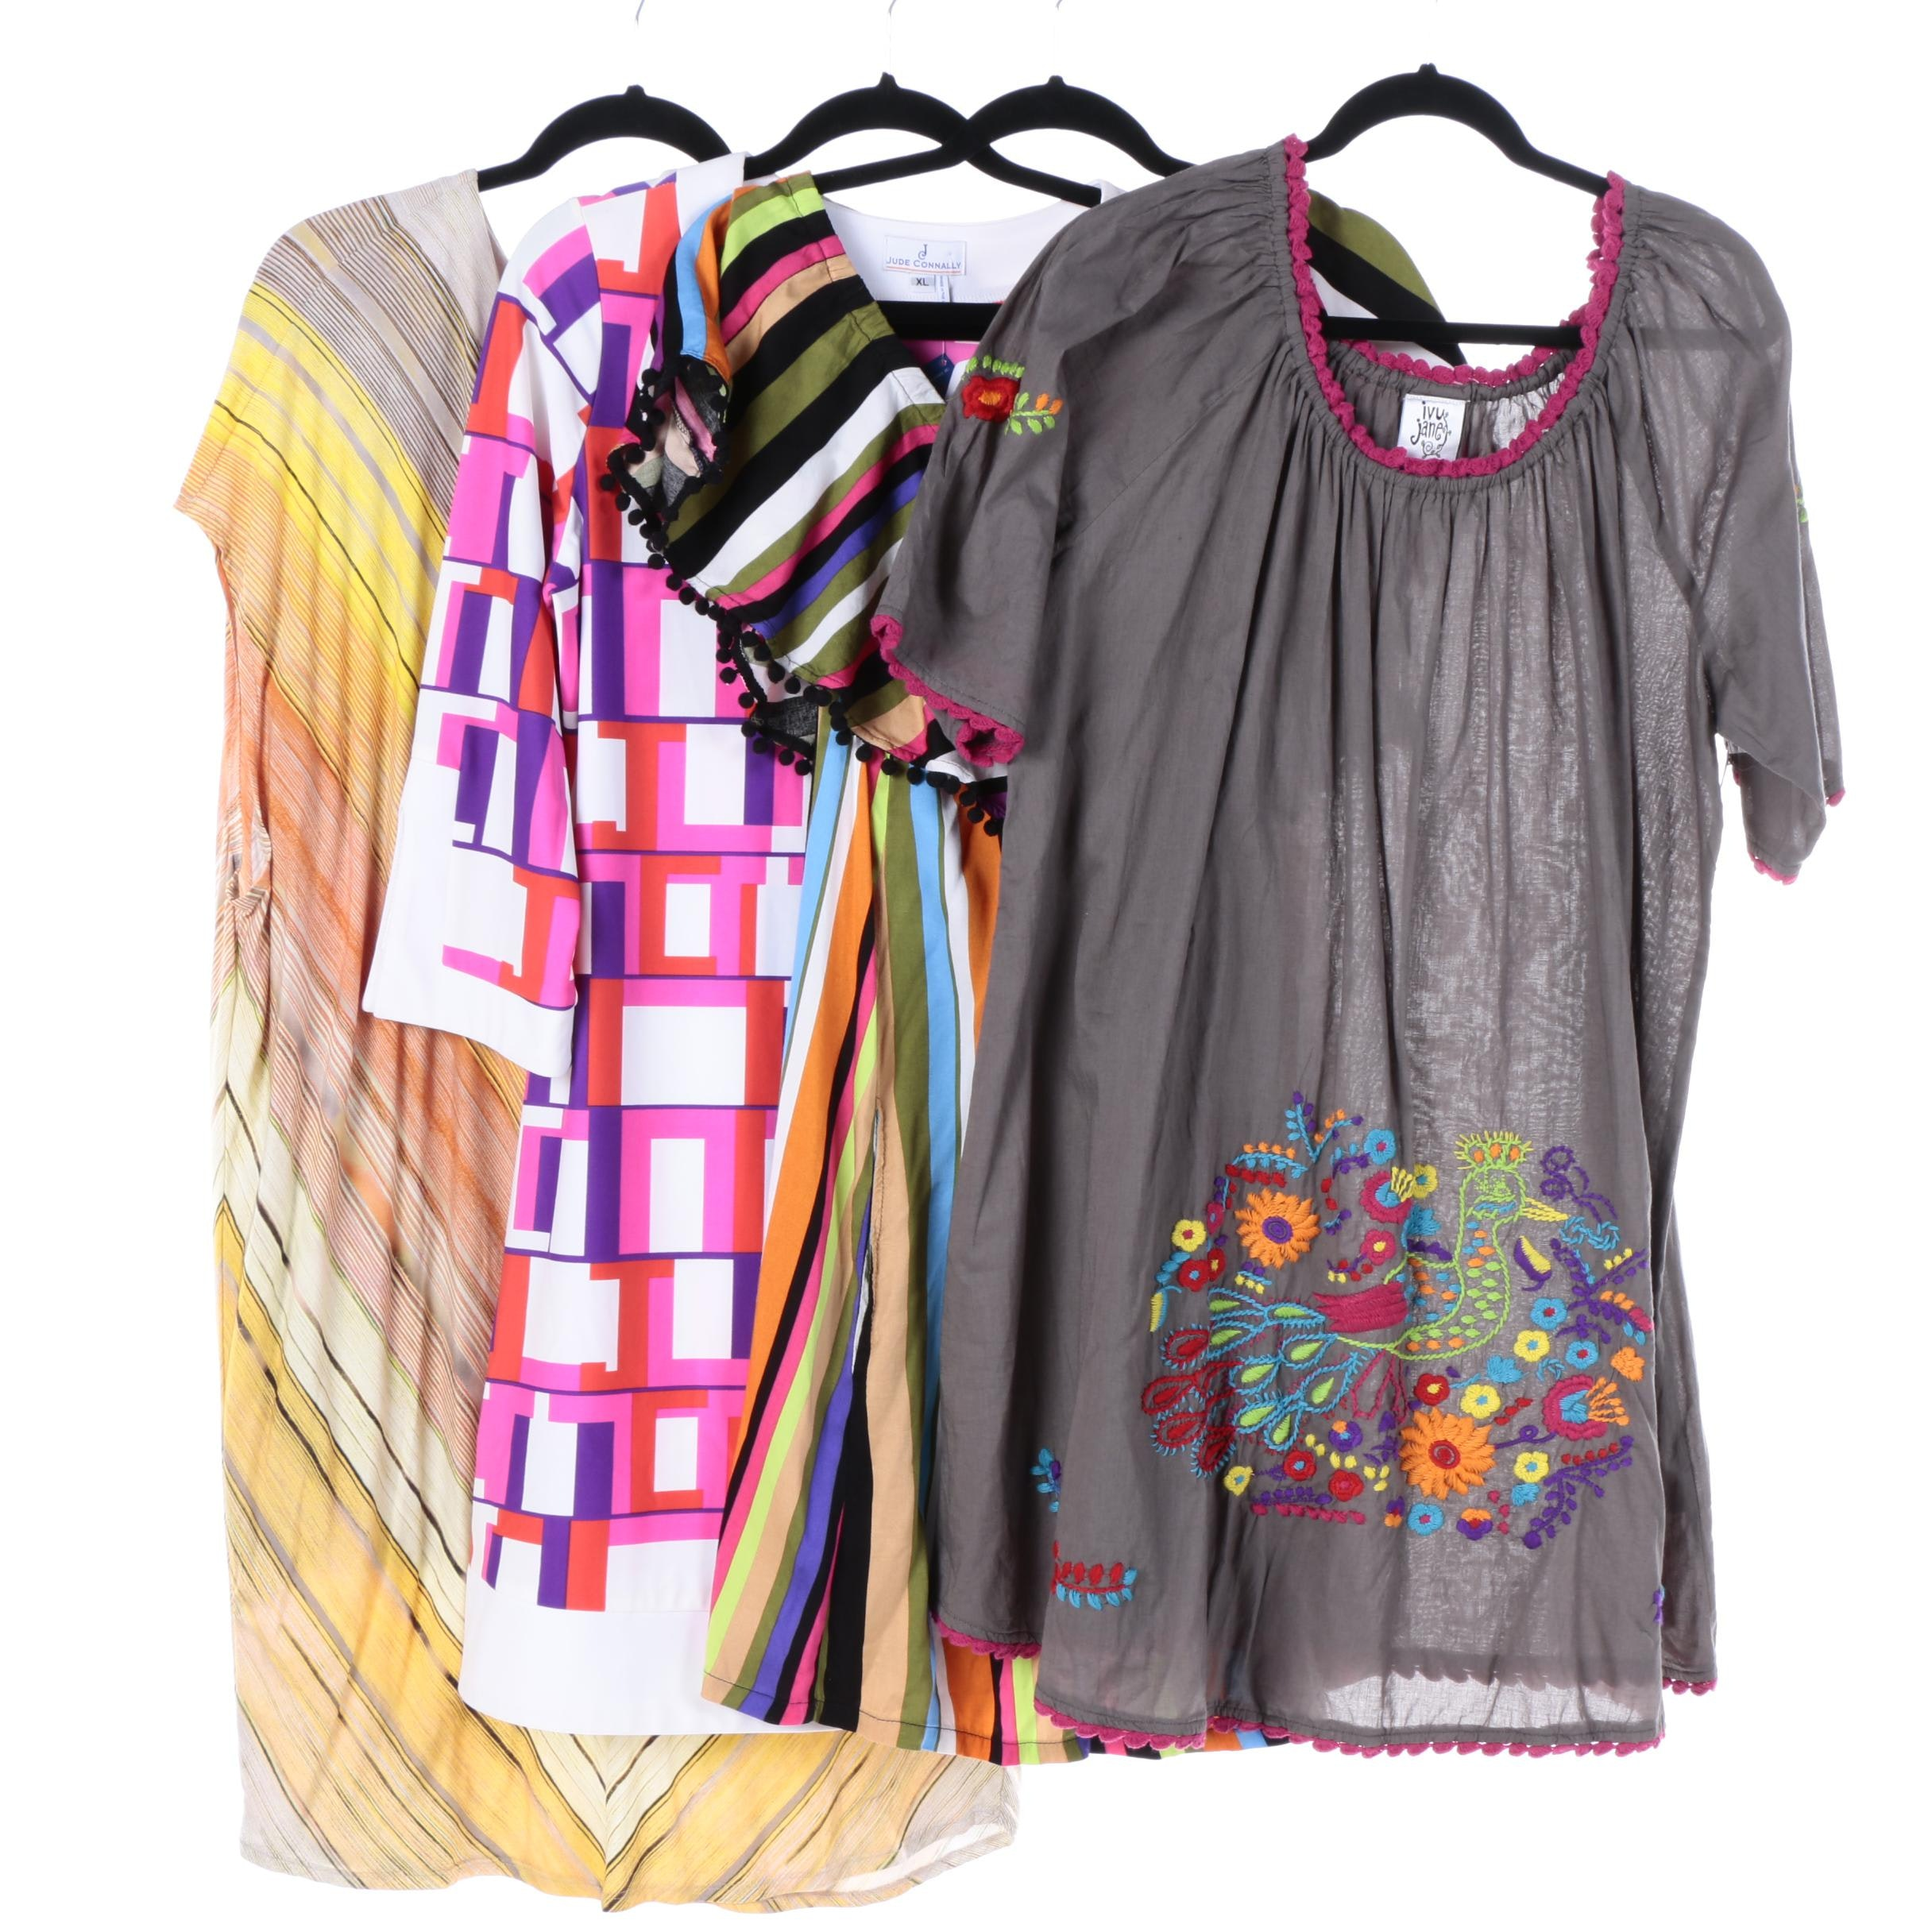 Women's Patterned Dresses, Including Uncle Frank